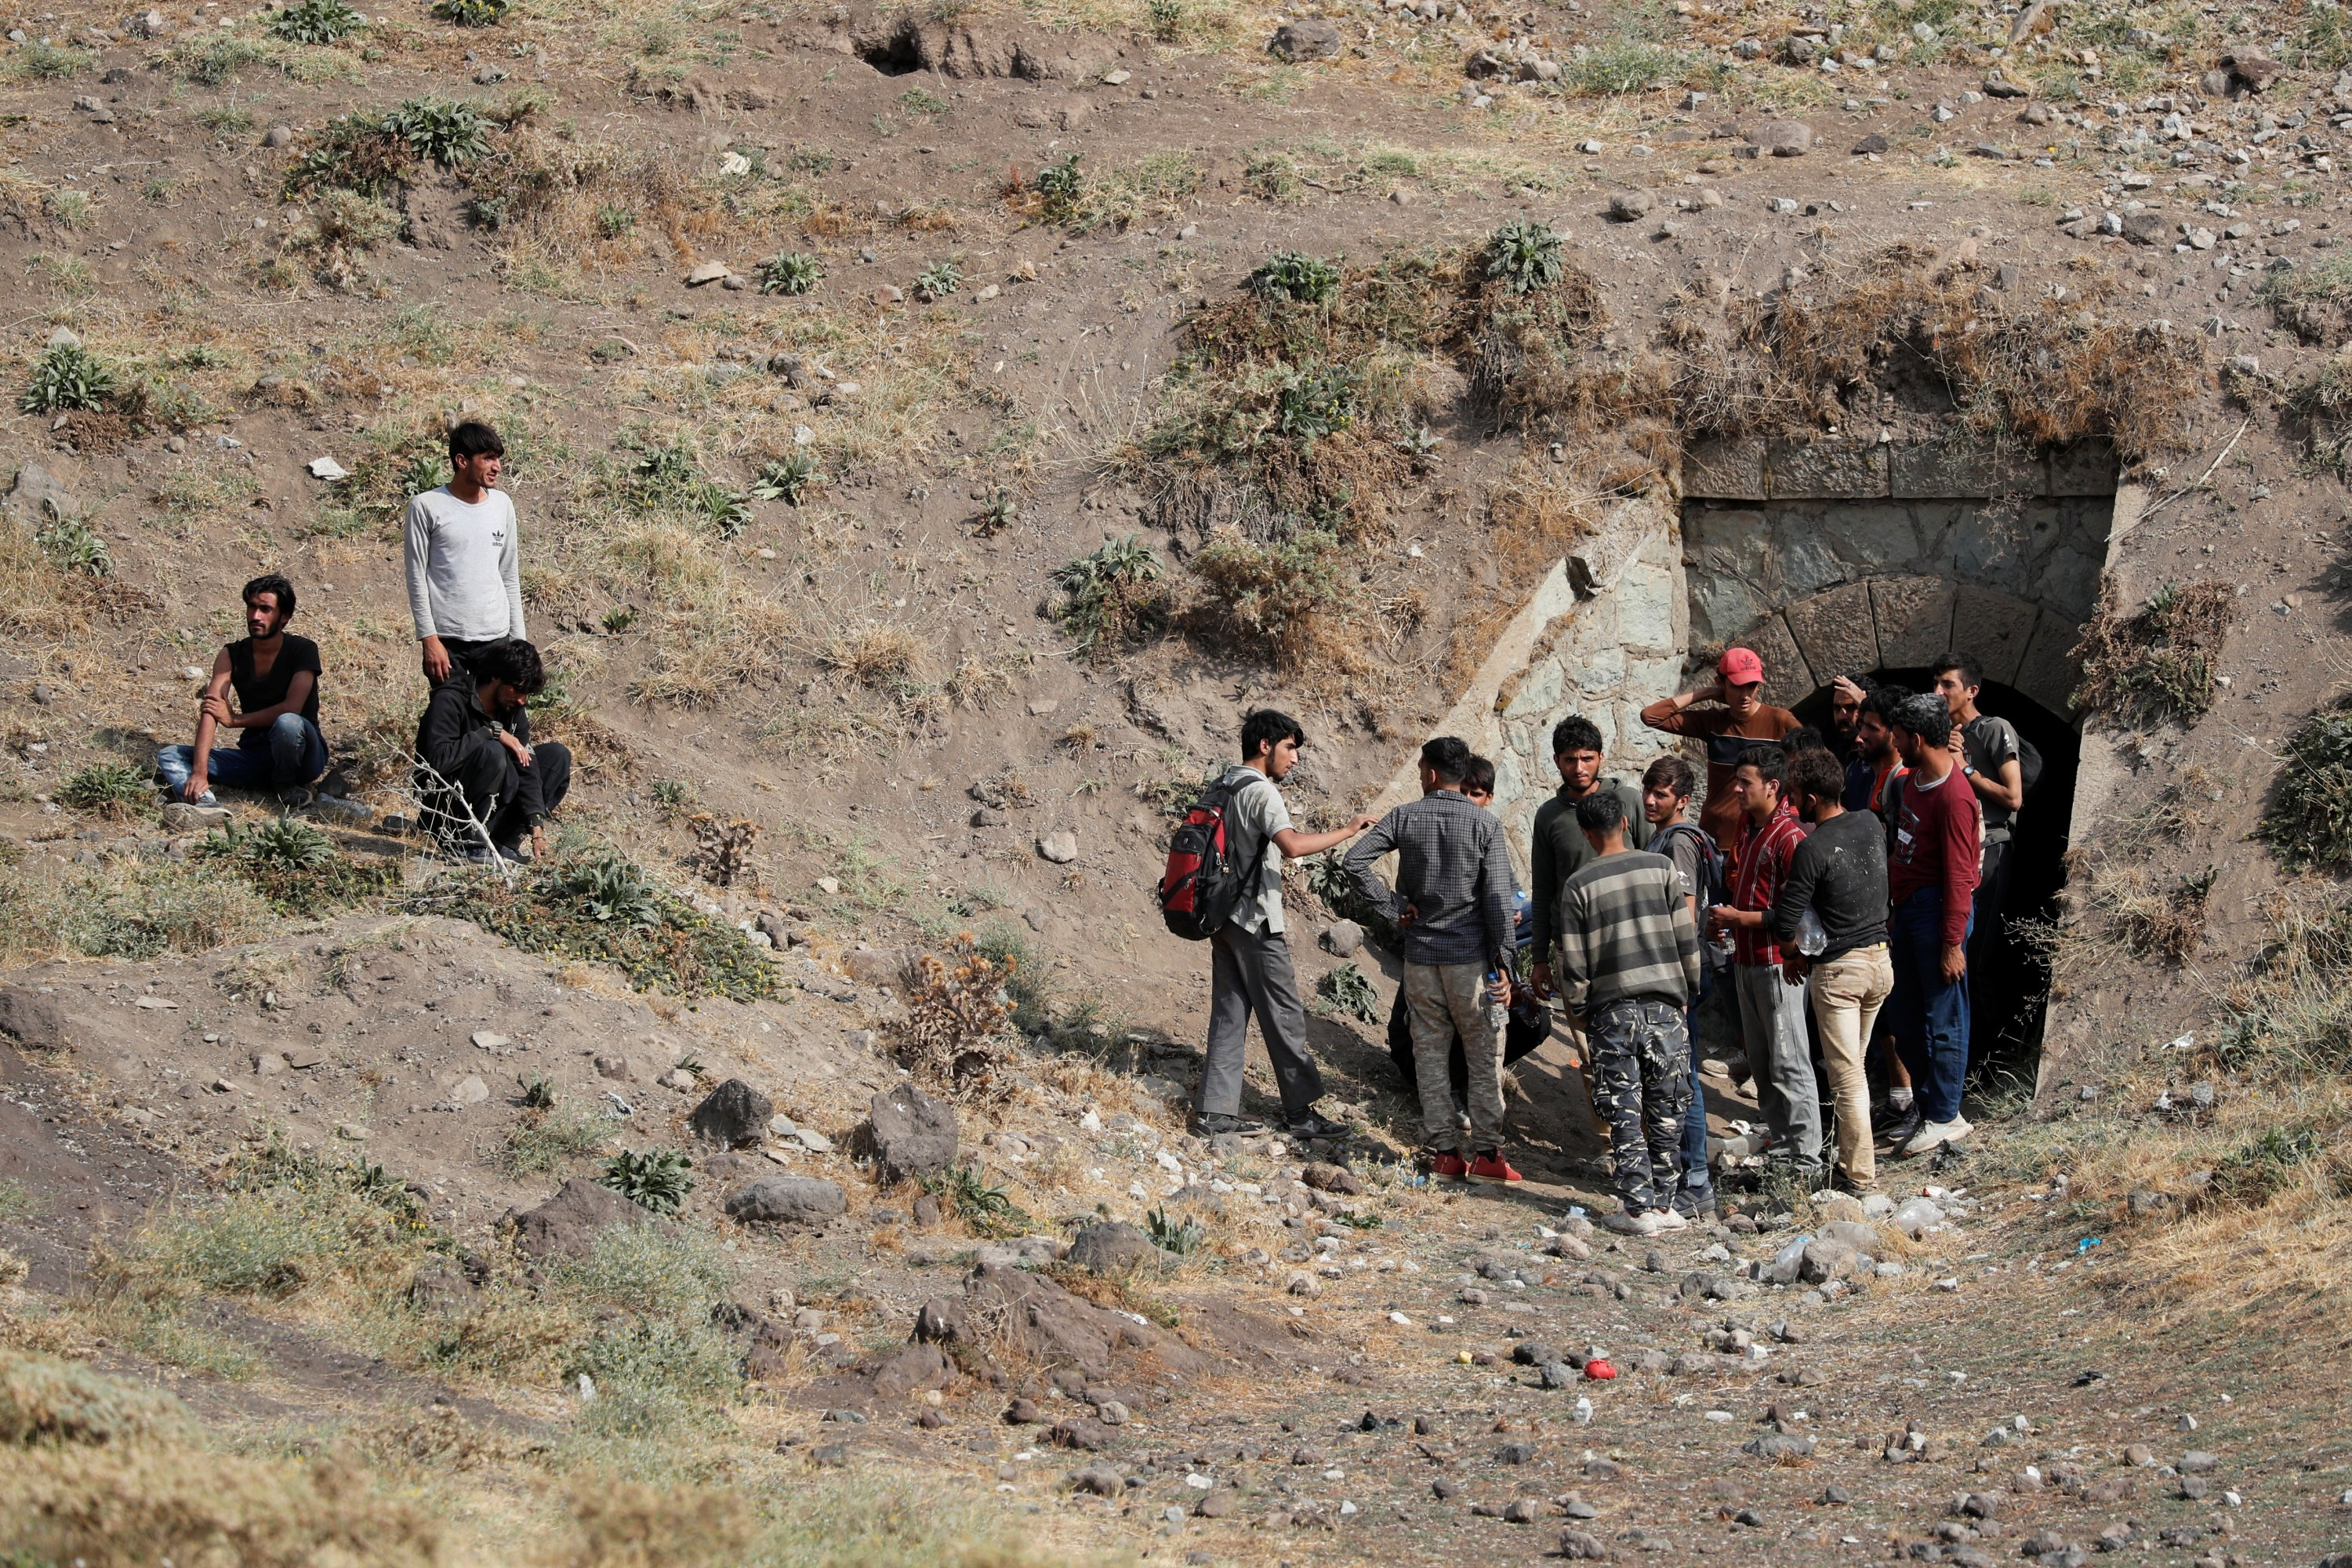 Afghan migrants stand outside a tunnel under train tracks after crossing illegally into Turkey from Iran, as they hide from security forces near Tatvan in Bitlis province, Turkey, Aug. 23, 2021. (Reuters Photo)